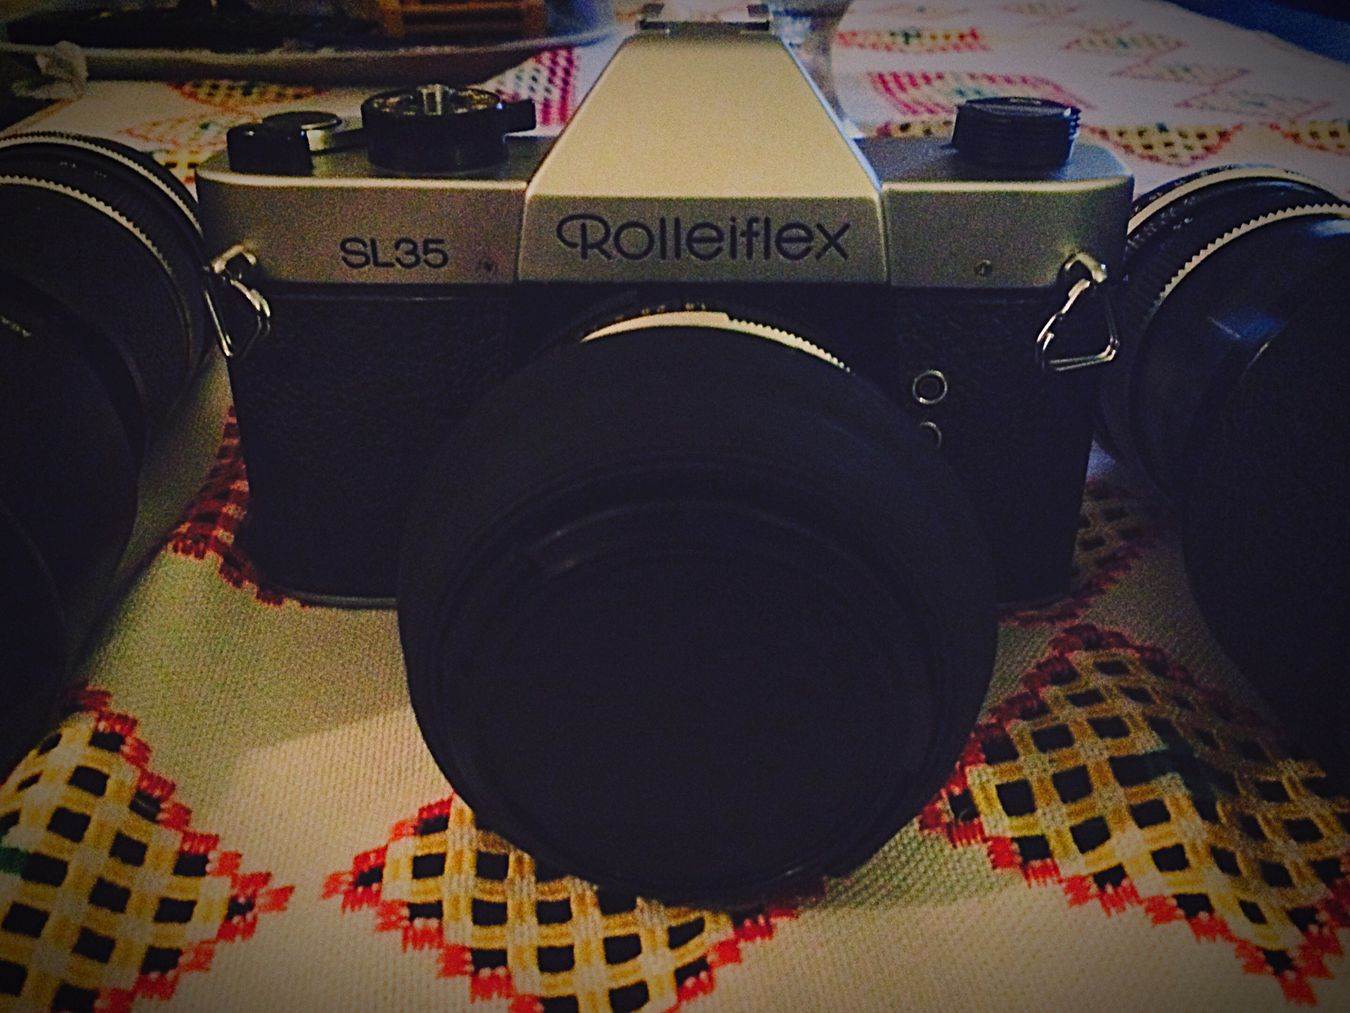 Camera Roleiflex Check This Out Taking Photos First Eyeem Photo Analogue Photography Photography